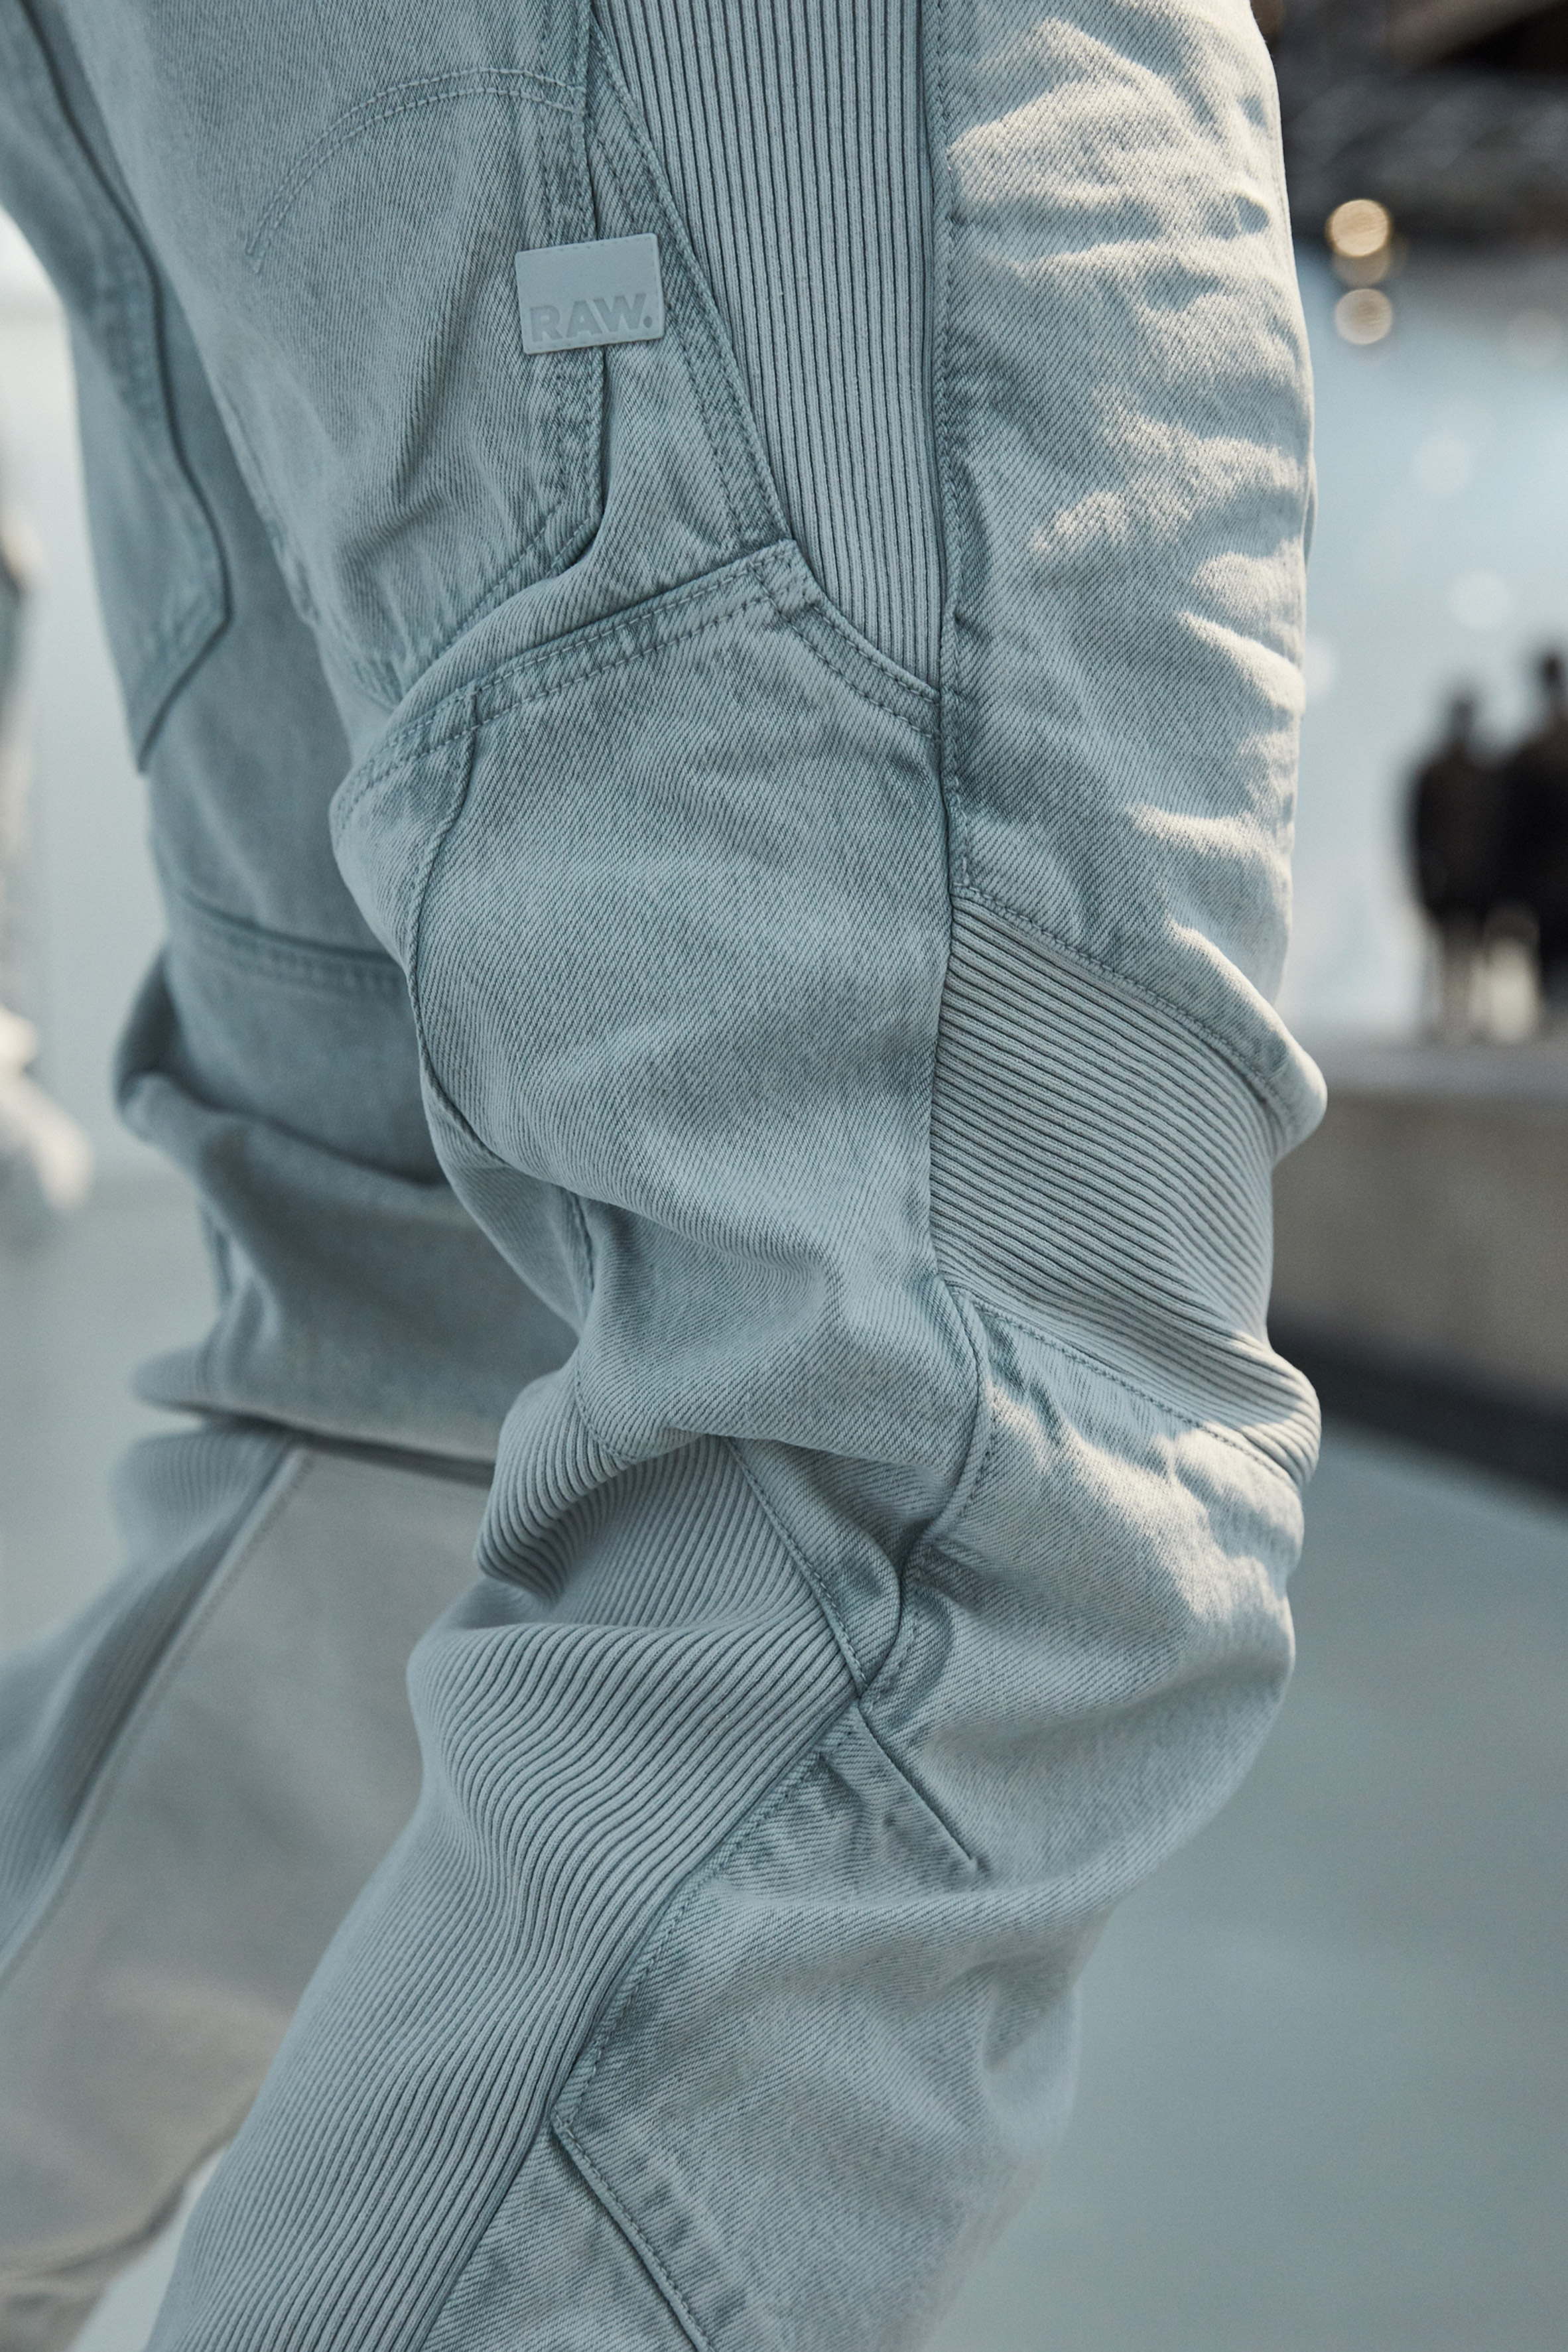 aitor-throup-g-star-raw-collection-desig